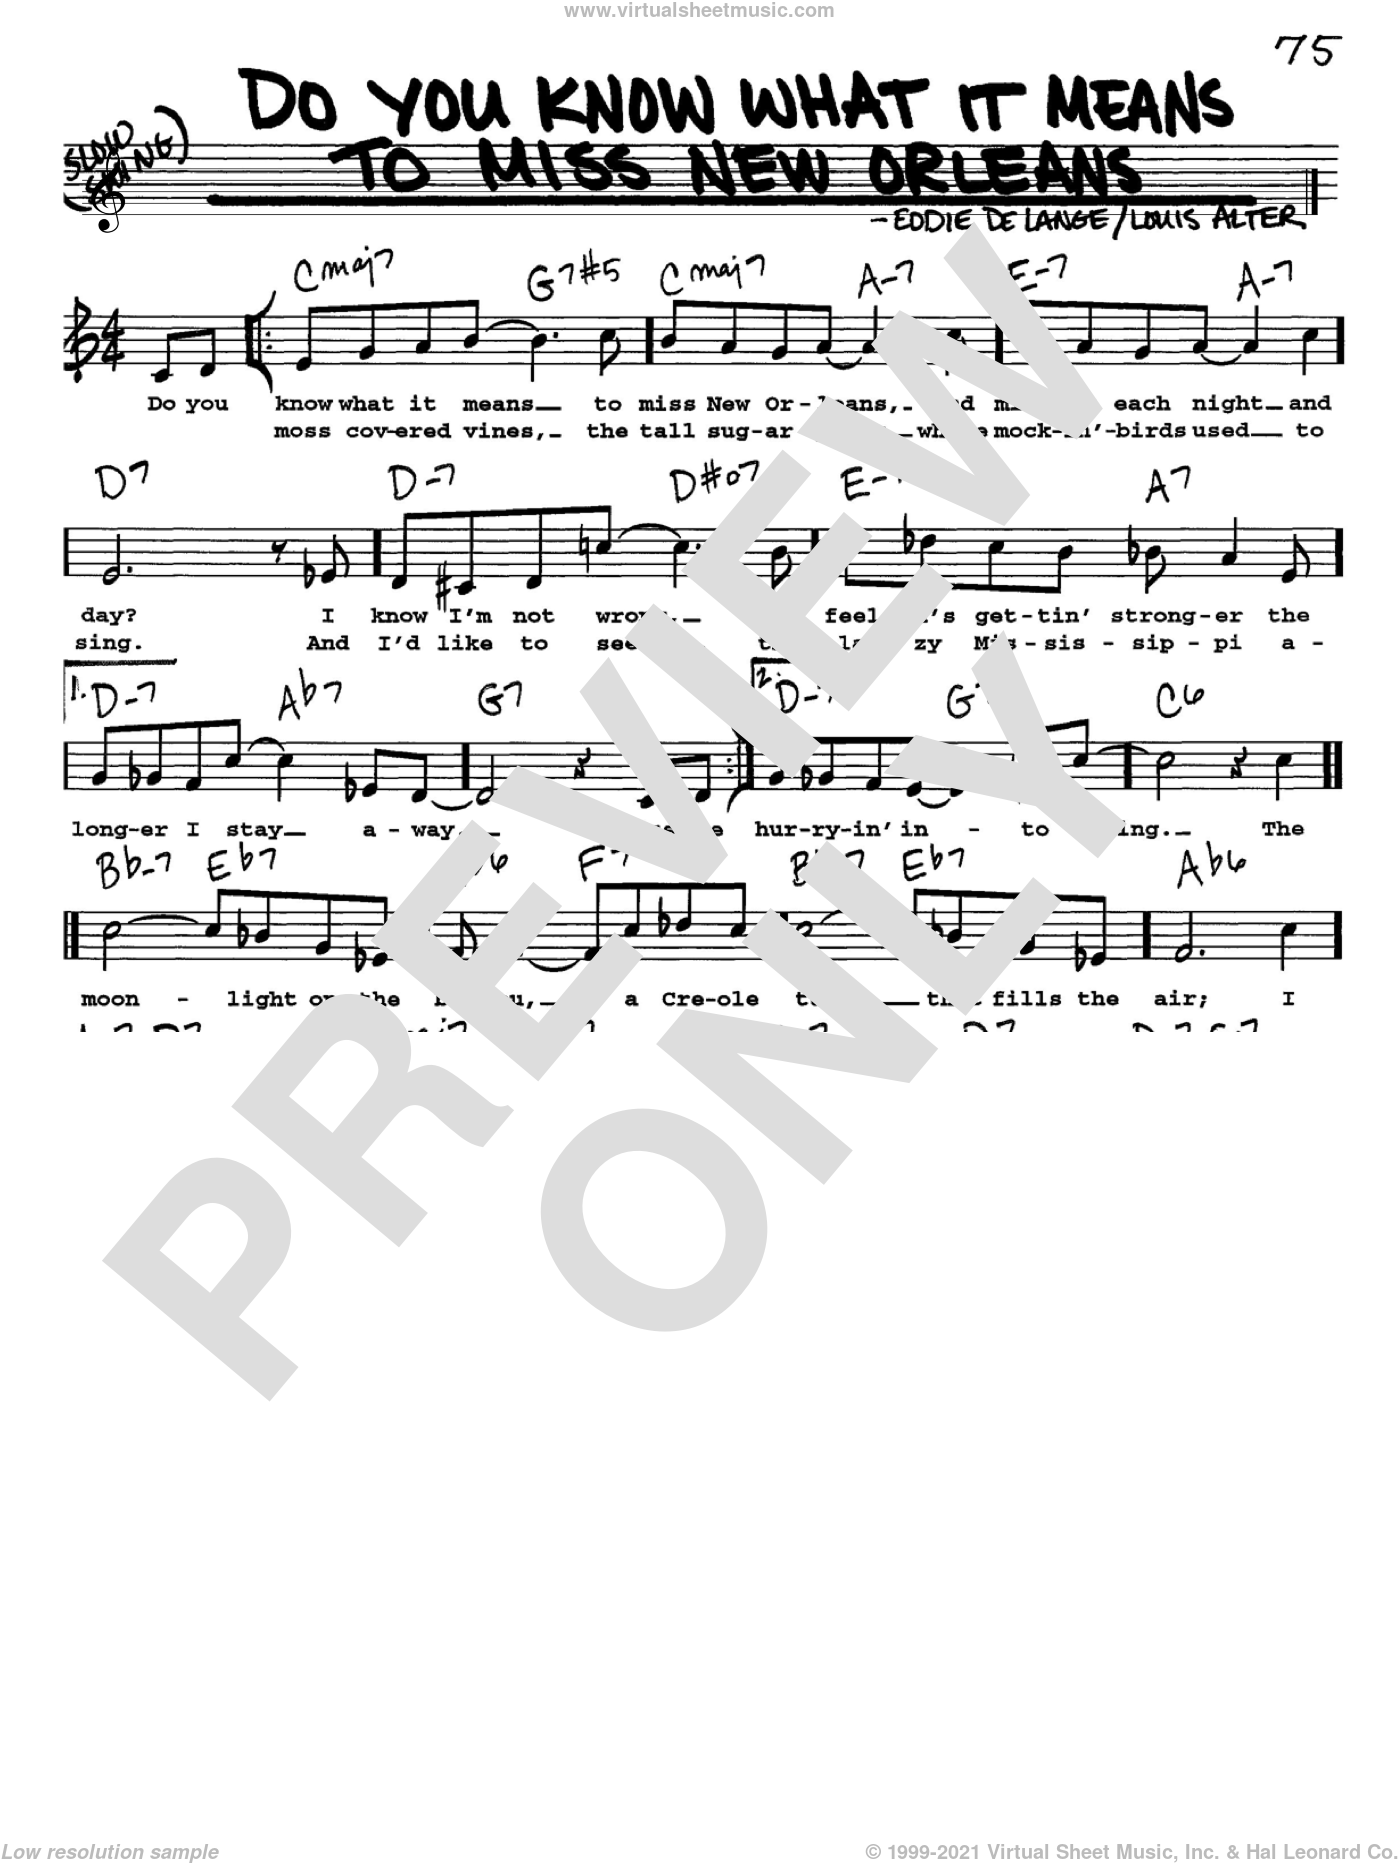 Do You Know What It Means To Miss New Orleans sheet music for voice and other instruments (Vocal Volume 1) by Louis Alter, Louis Armstrong and Eddie DeLange. Score Image Preview.